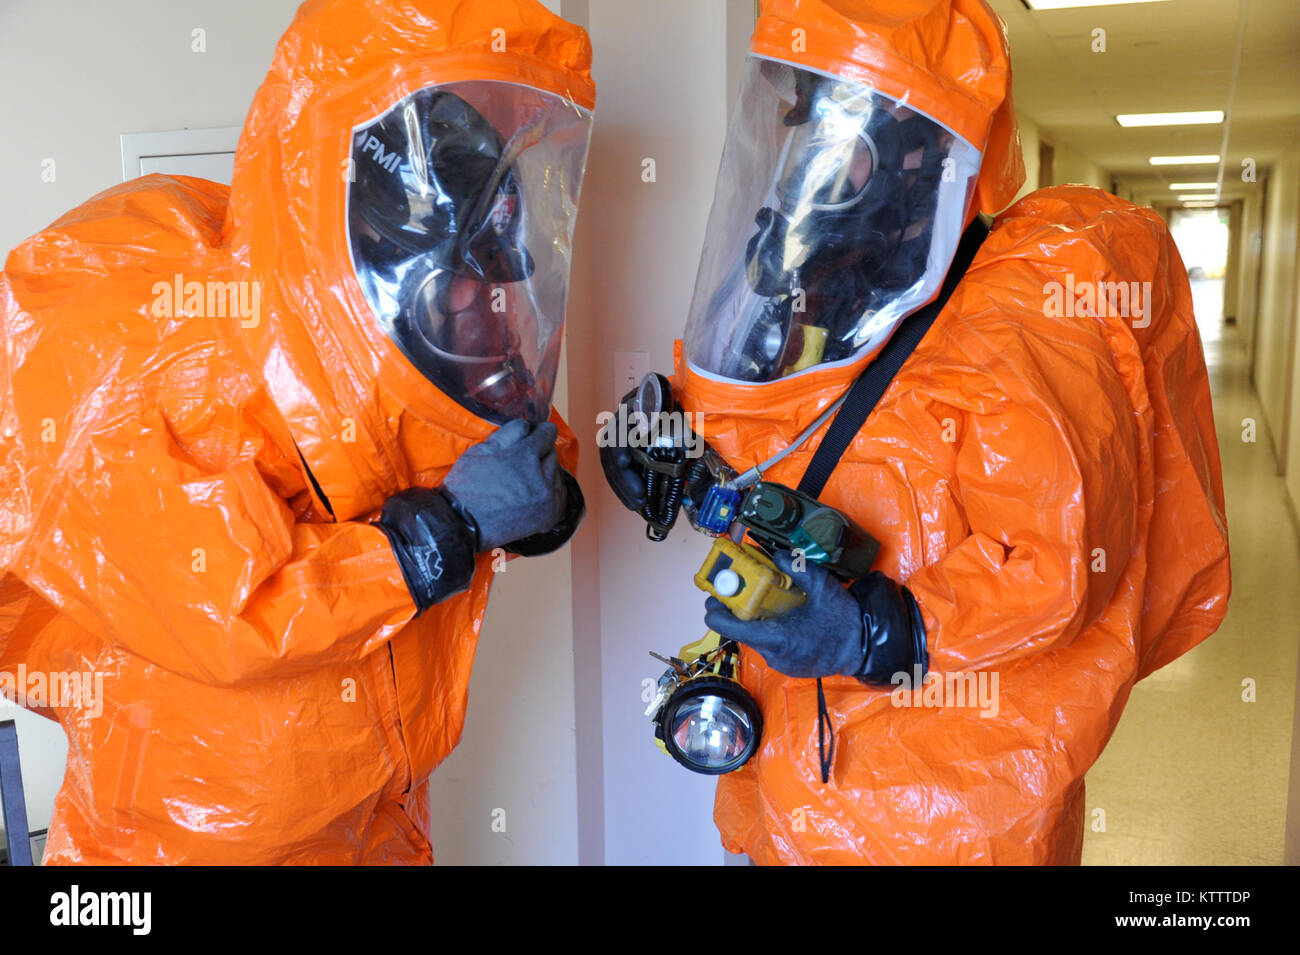 BROOKLYN, NY - 24 Civil Support Team (CST) members conduct training by identifying agents and substances, assessing - Stock Image